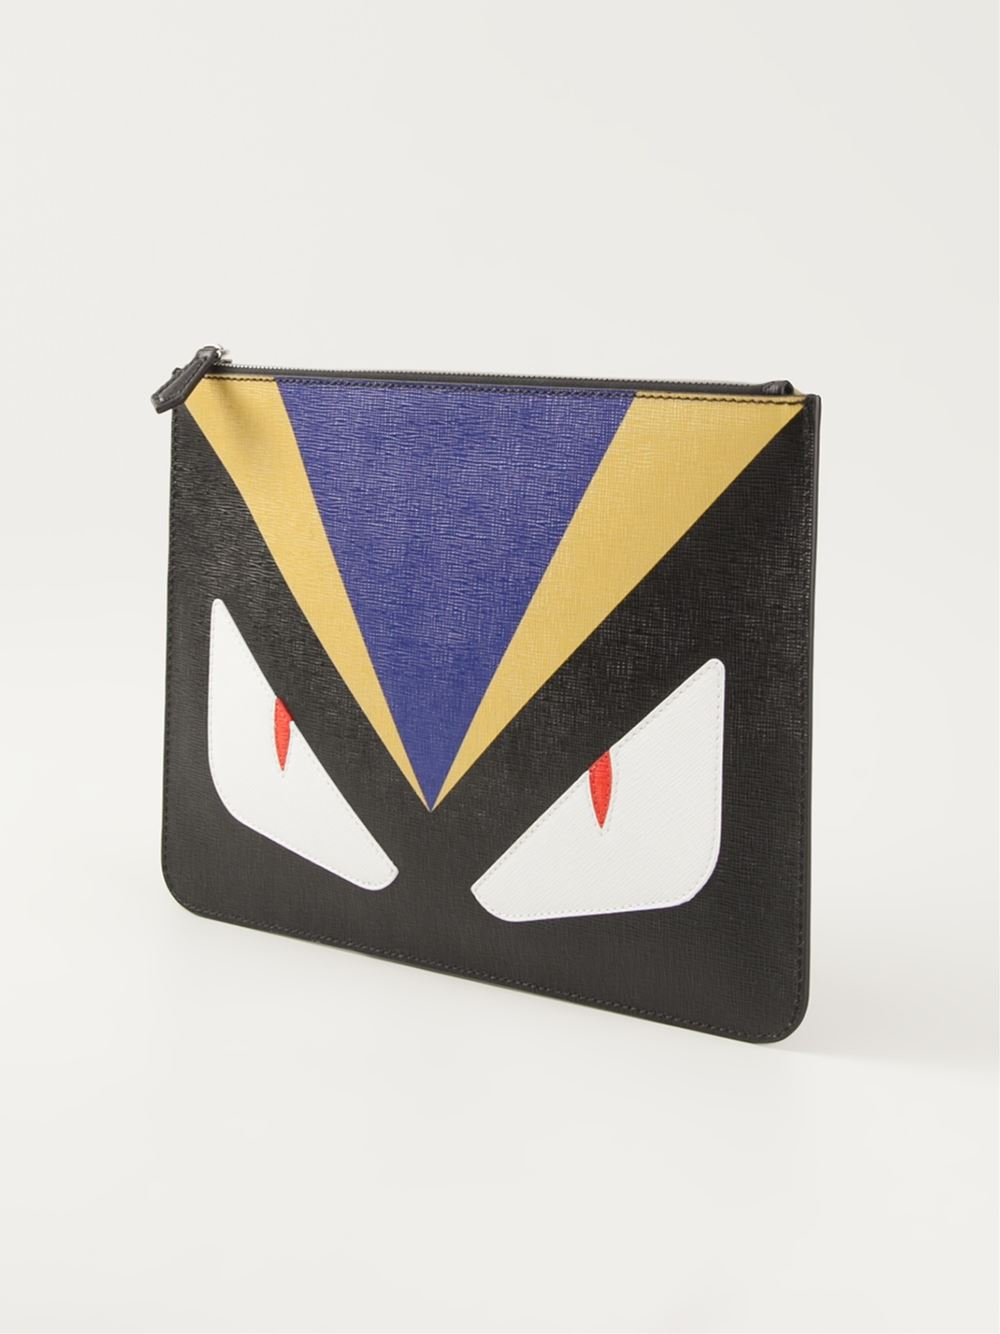 For Clutch 'bag Black Lyst Men Fendi In Bugs' BqRB46w